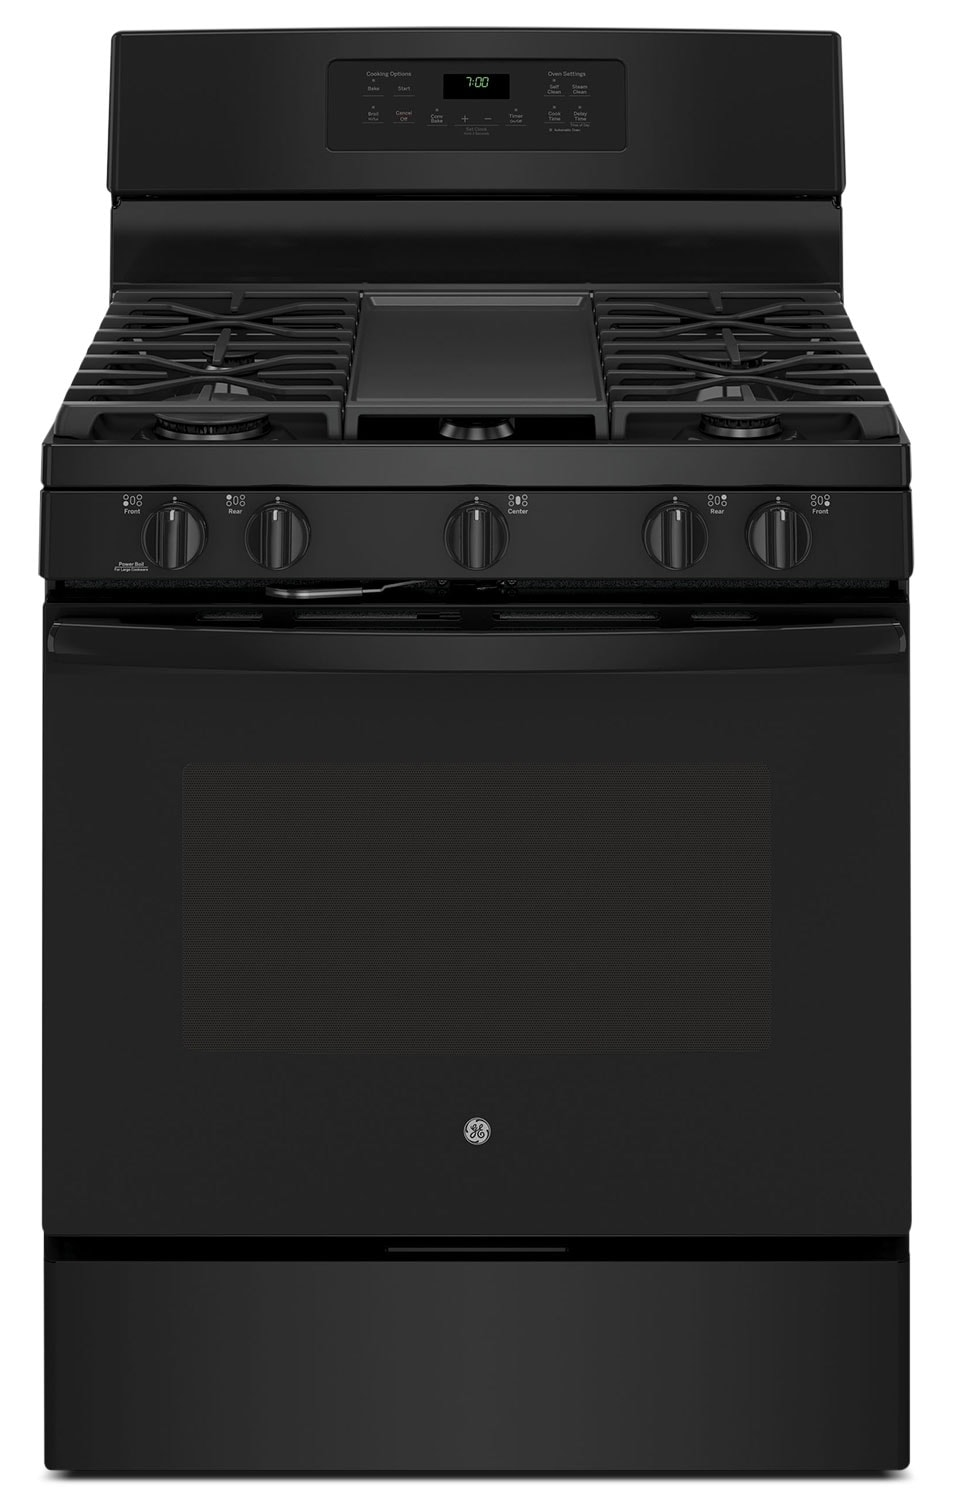 Cooking Products - GE 5.0 Cu. Ft. Freestanding Gas Range – JCGB700DEJBB